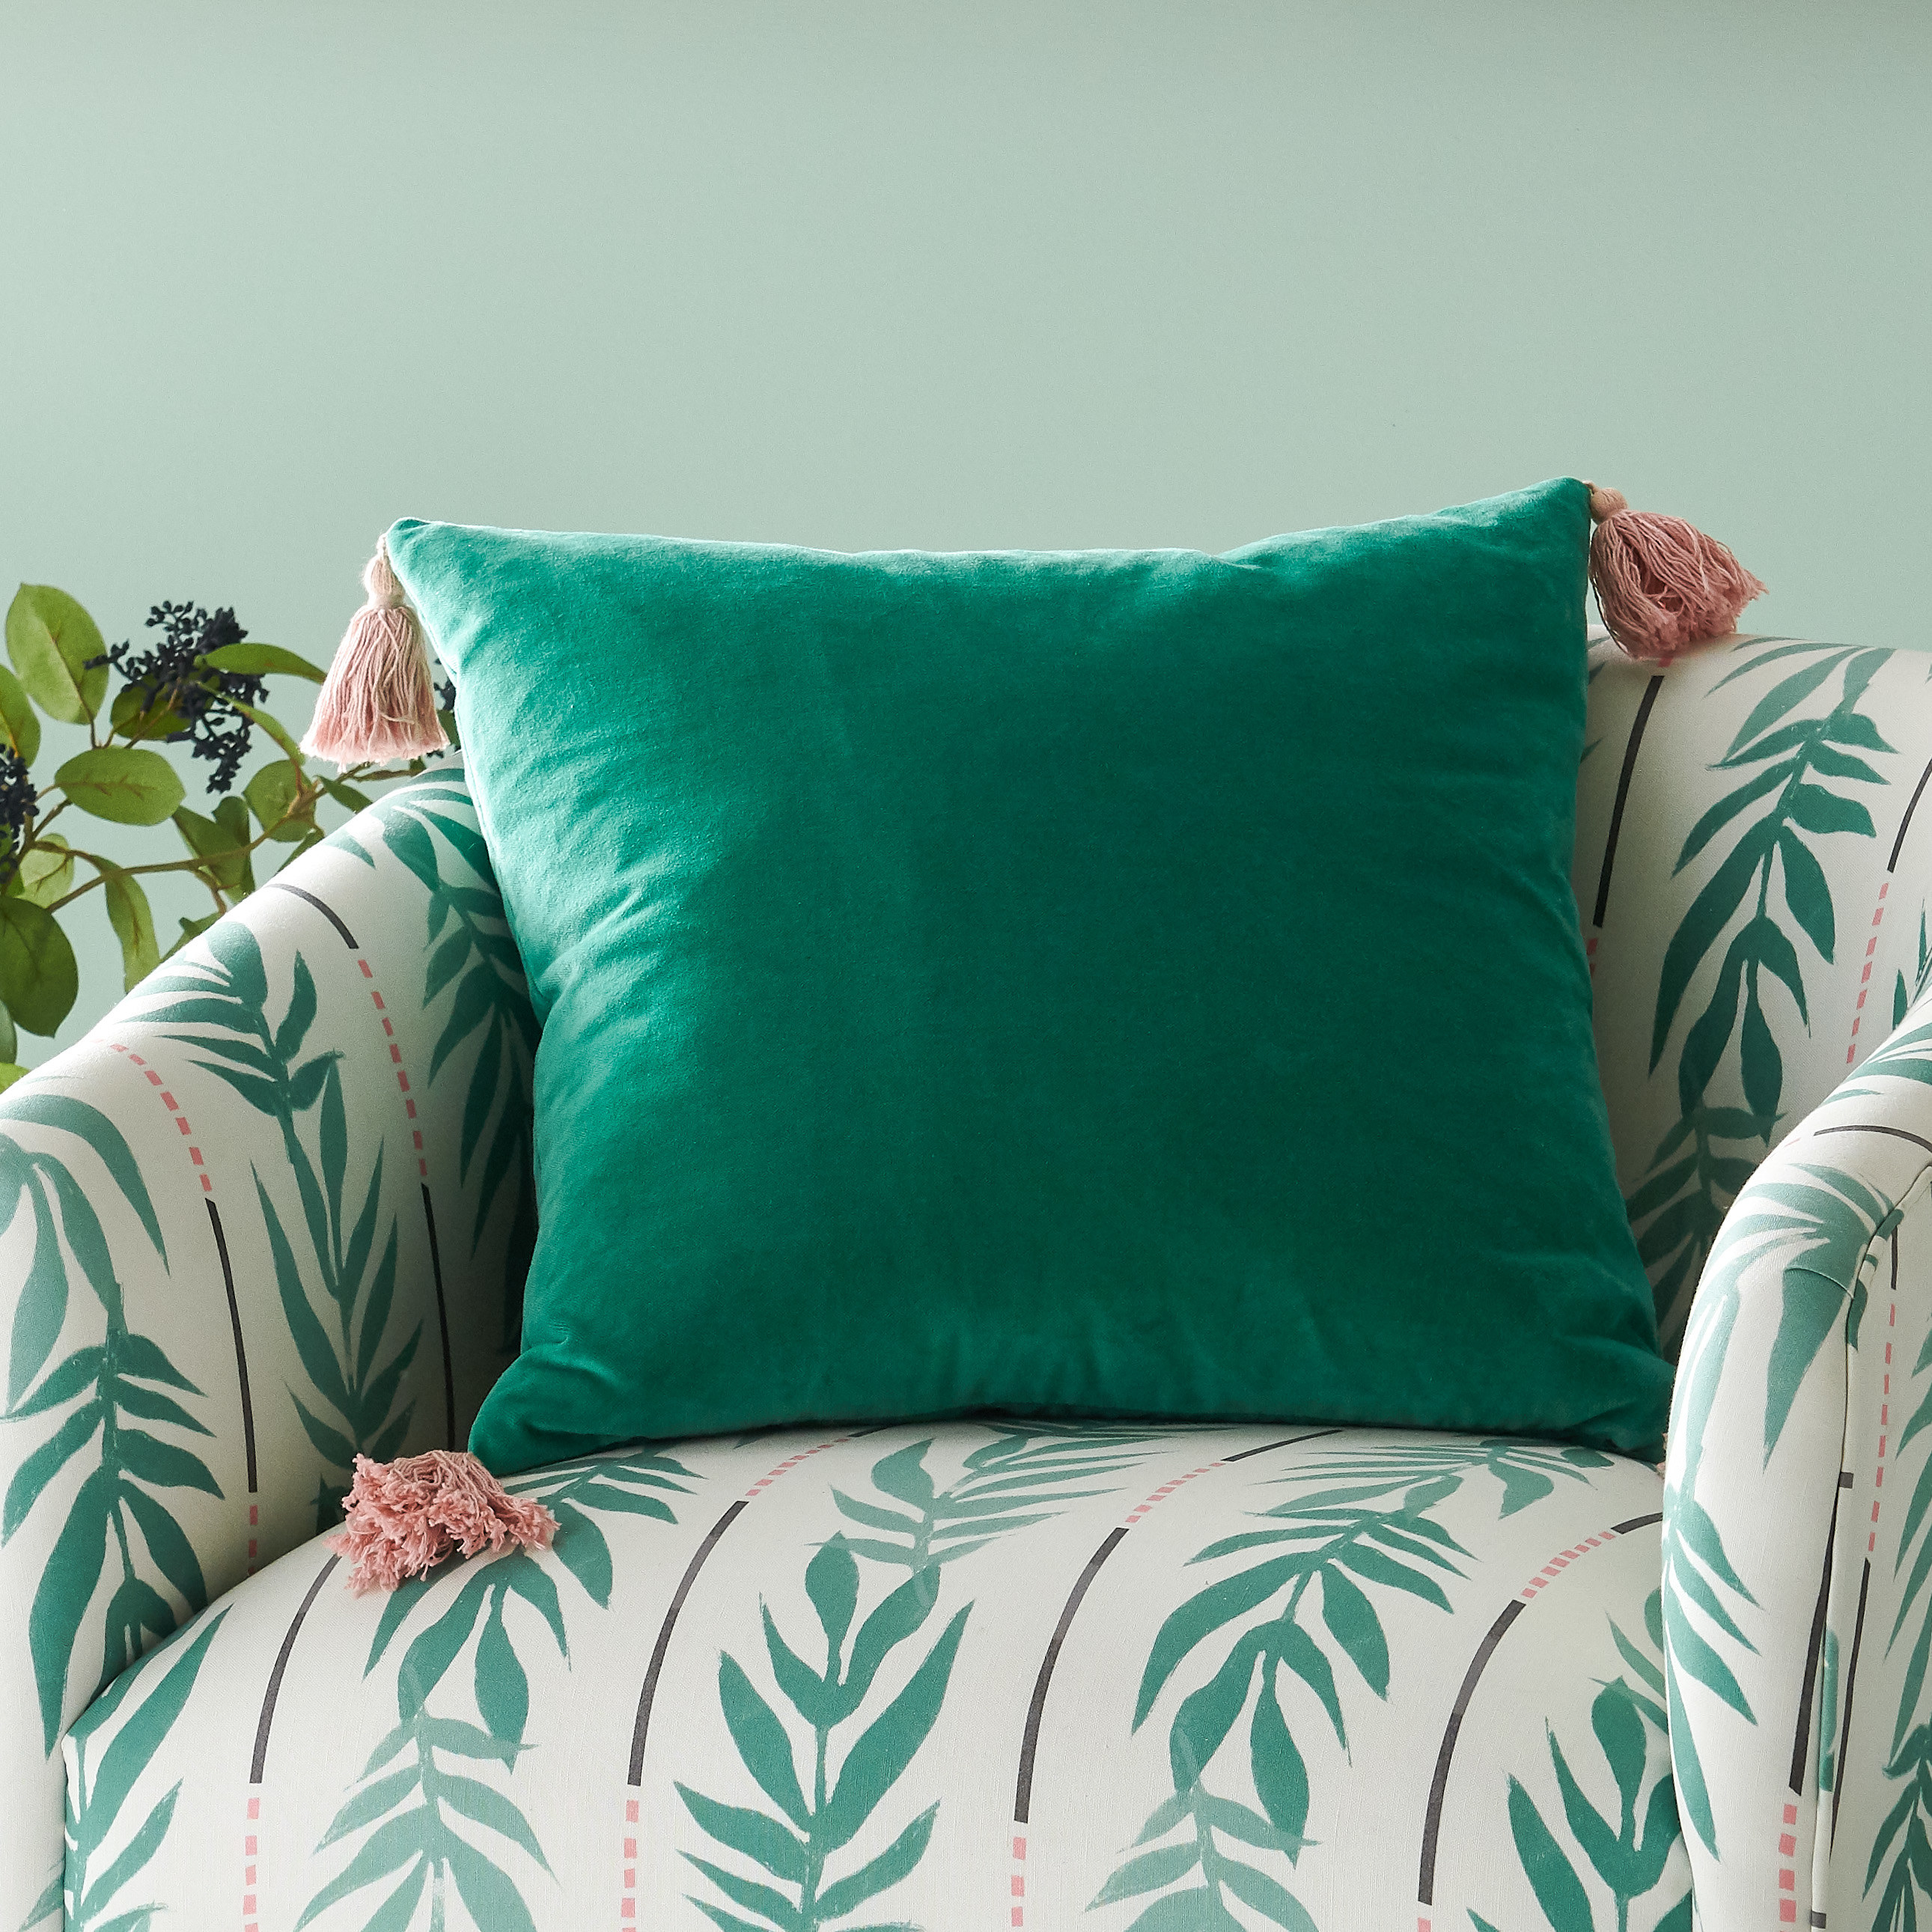 The throw pillow in green with pink tassels on a matching green printed couch